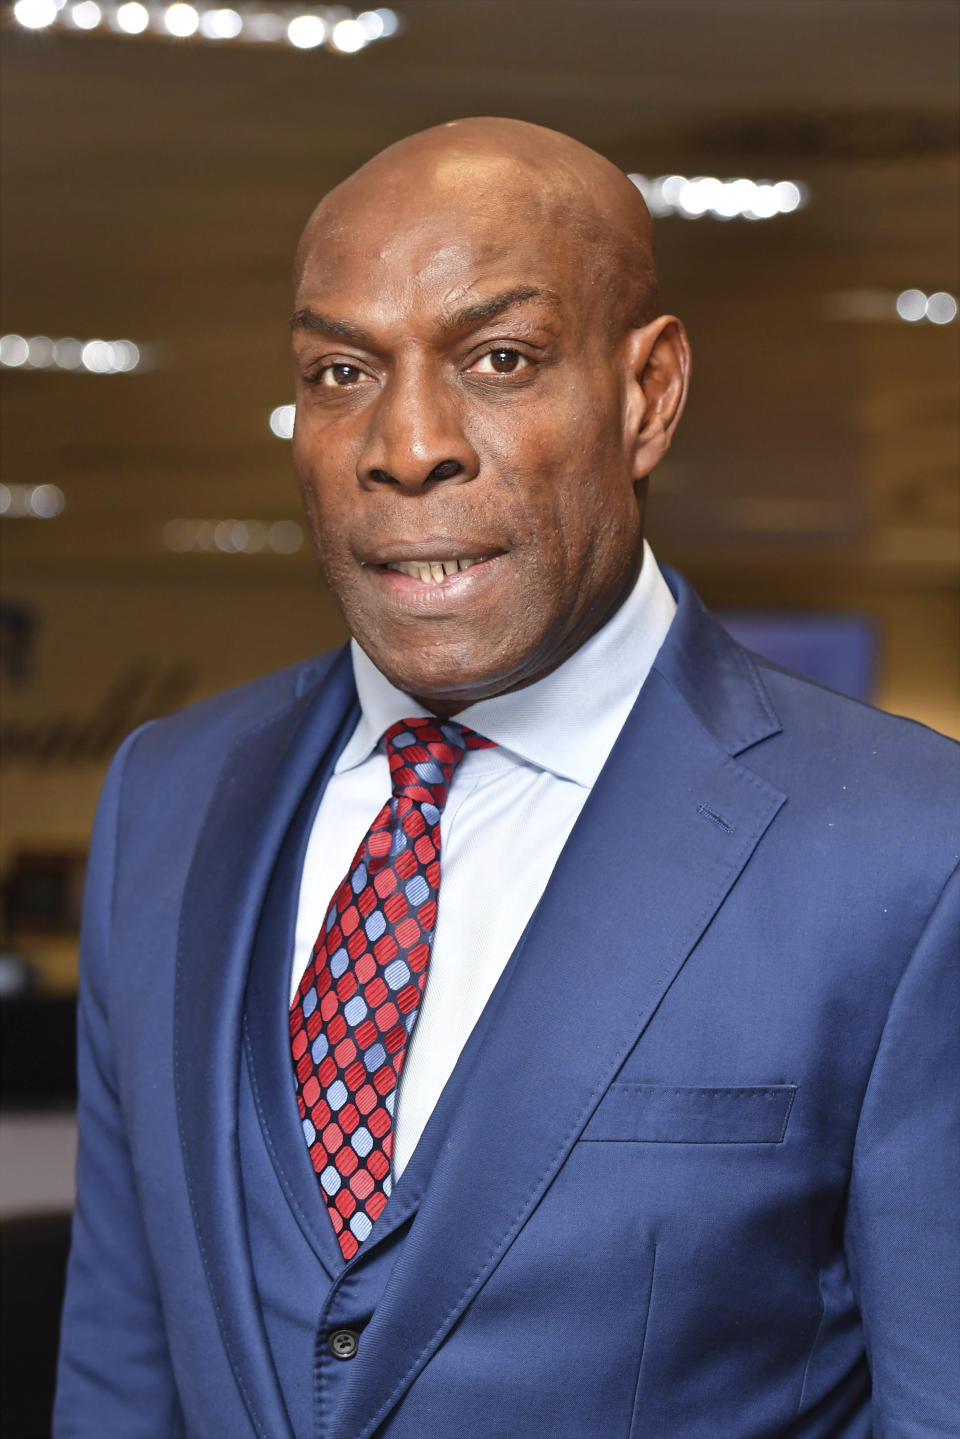 Photo by: KGC-143/STAR MAX/IPx 2018 9/11/18 Frank Bruno at the 14th Annual BGC Charity Day at BGC Partners in Canary Wharf, London, England, UK.